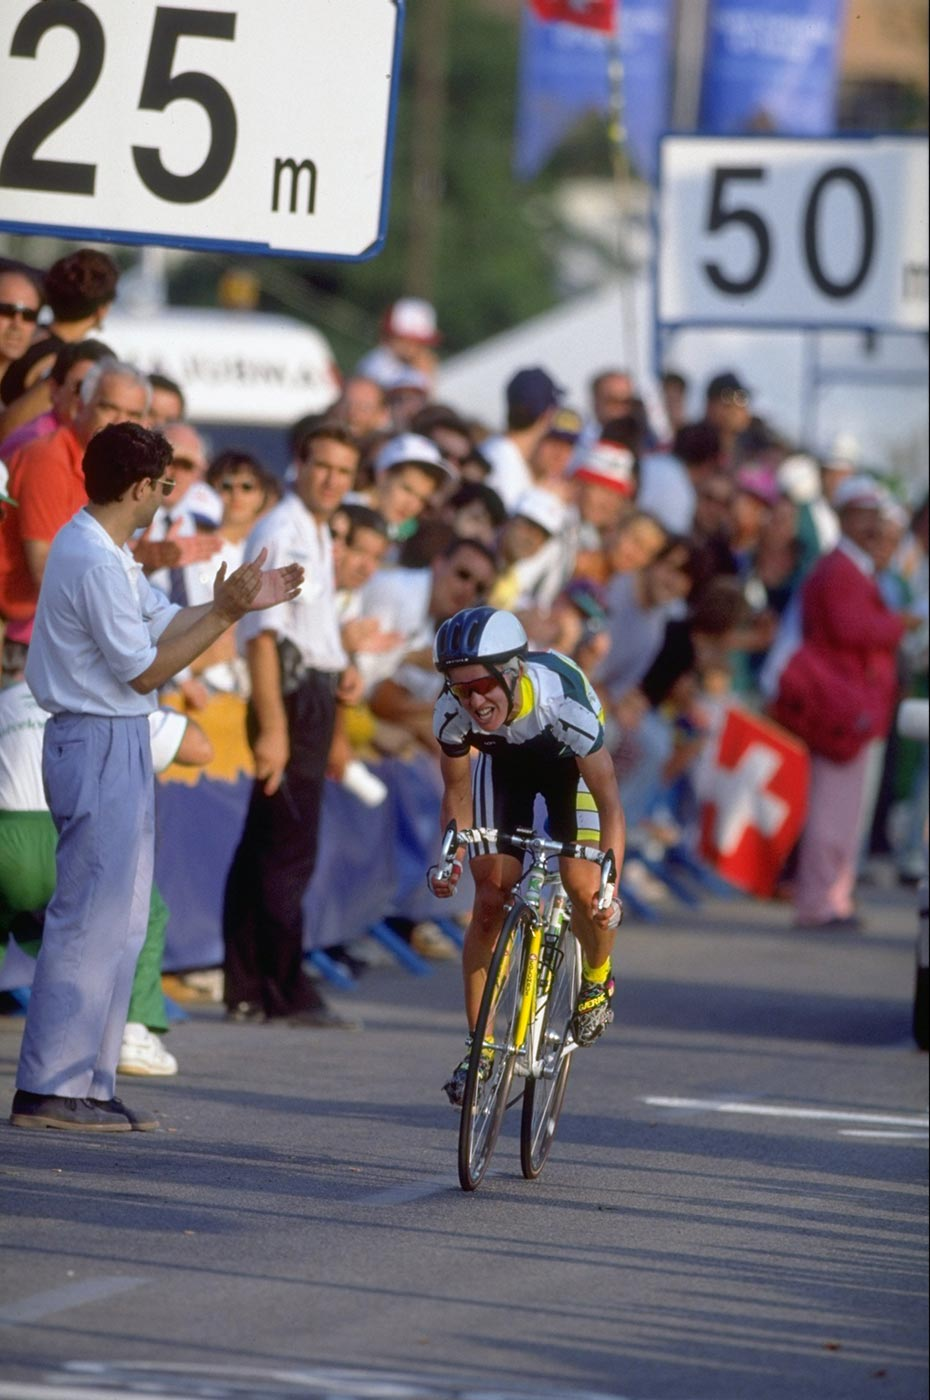 Kathy Watt competing in the Individual Road Race event at the Barcelona Olympic Games, Spain, 1992. - click to view larger image